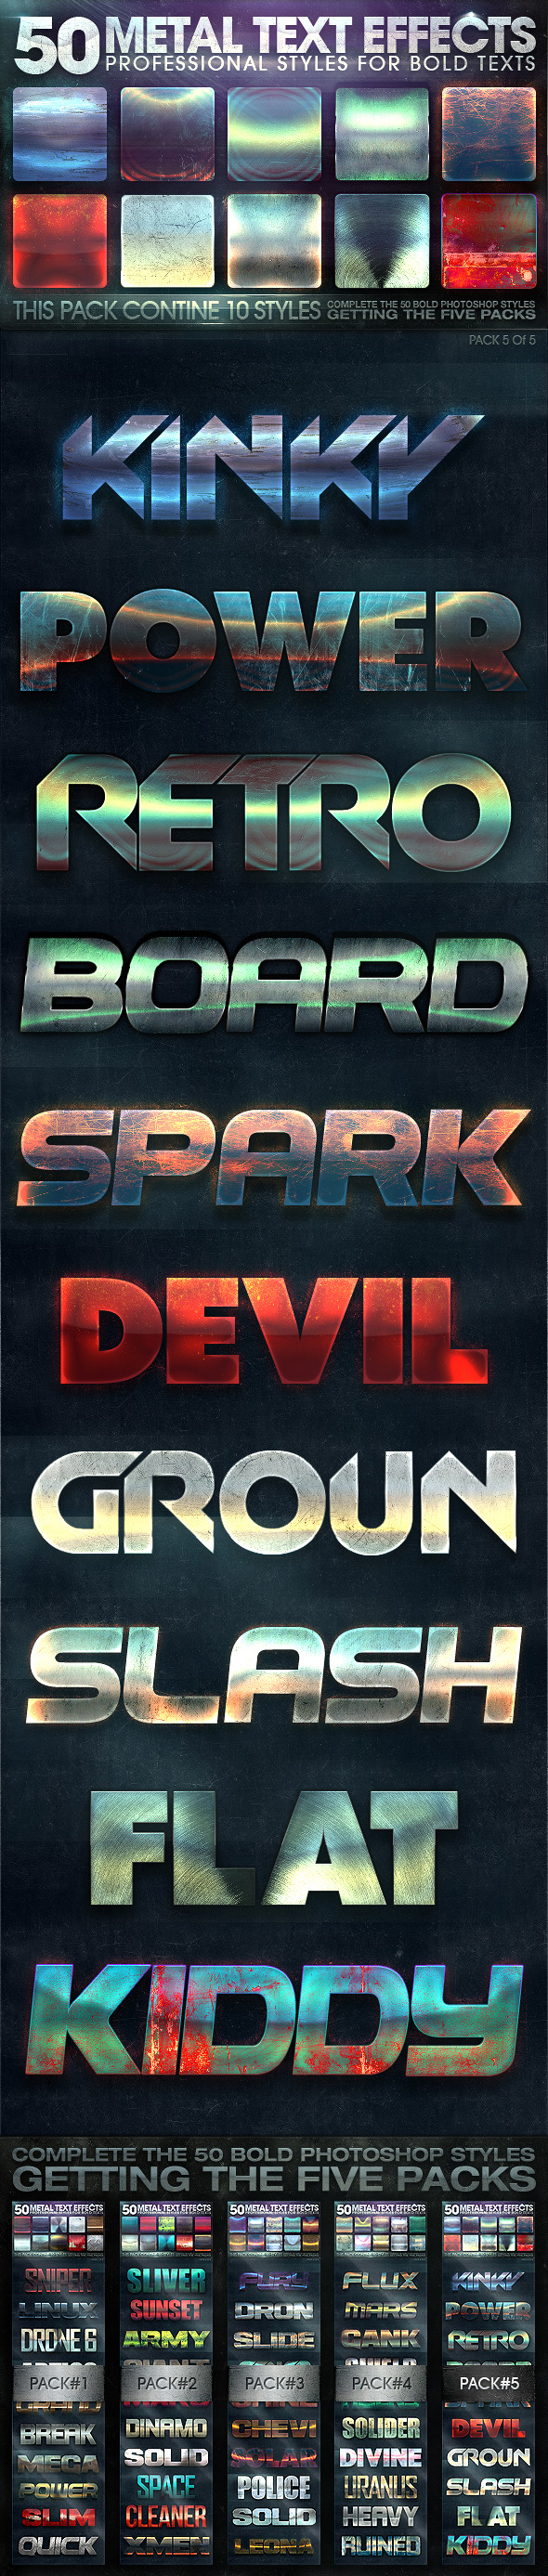 GraphicRiver 50 Metal Text Effects 5 of 5 10736602